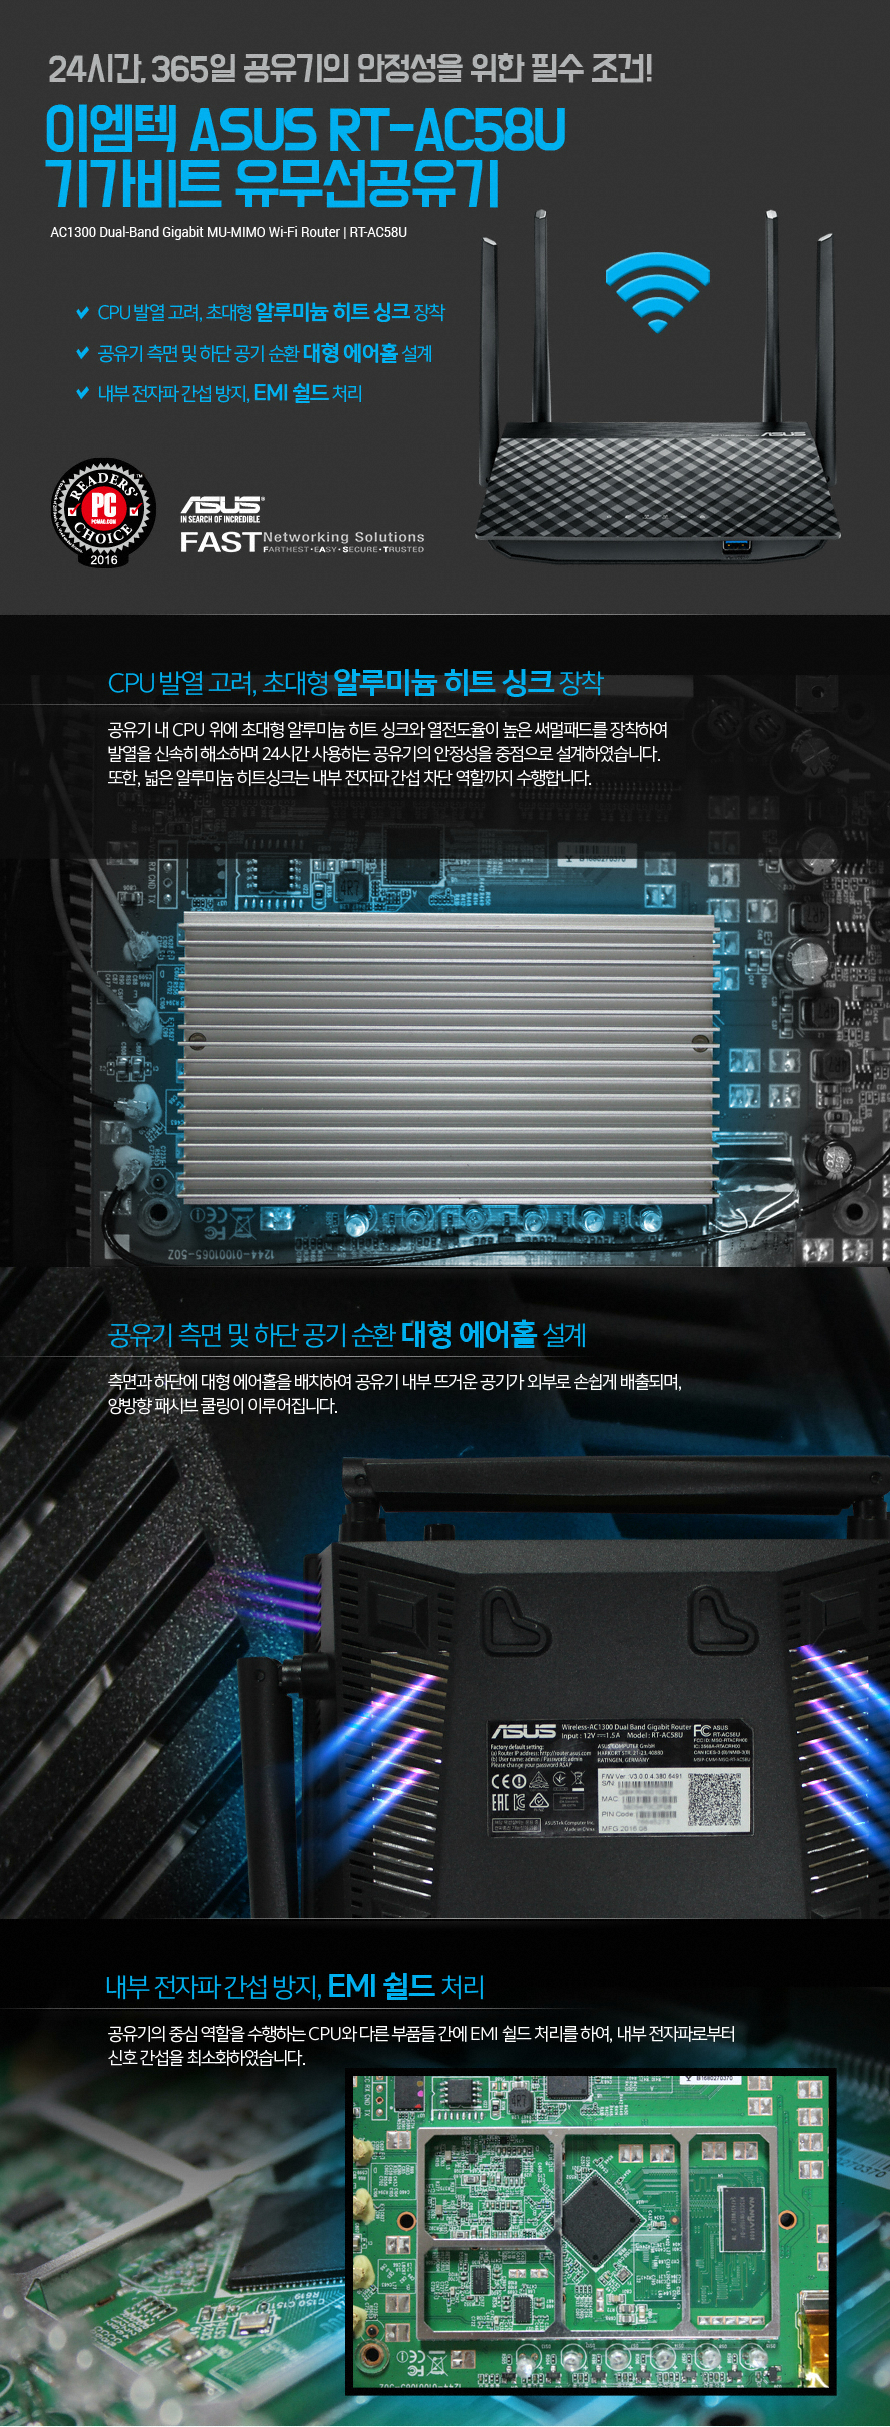 ASUS_AC58U_DB_Addition.jpg